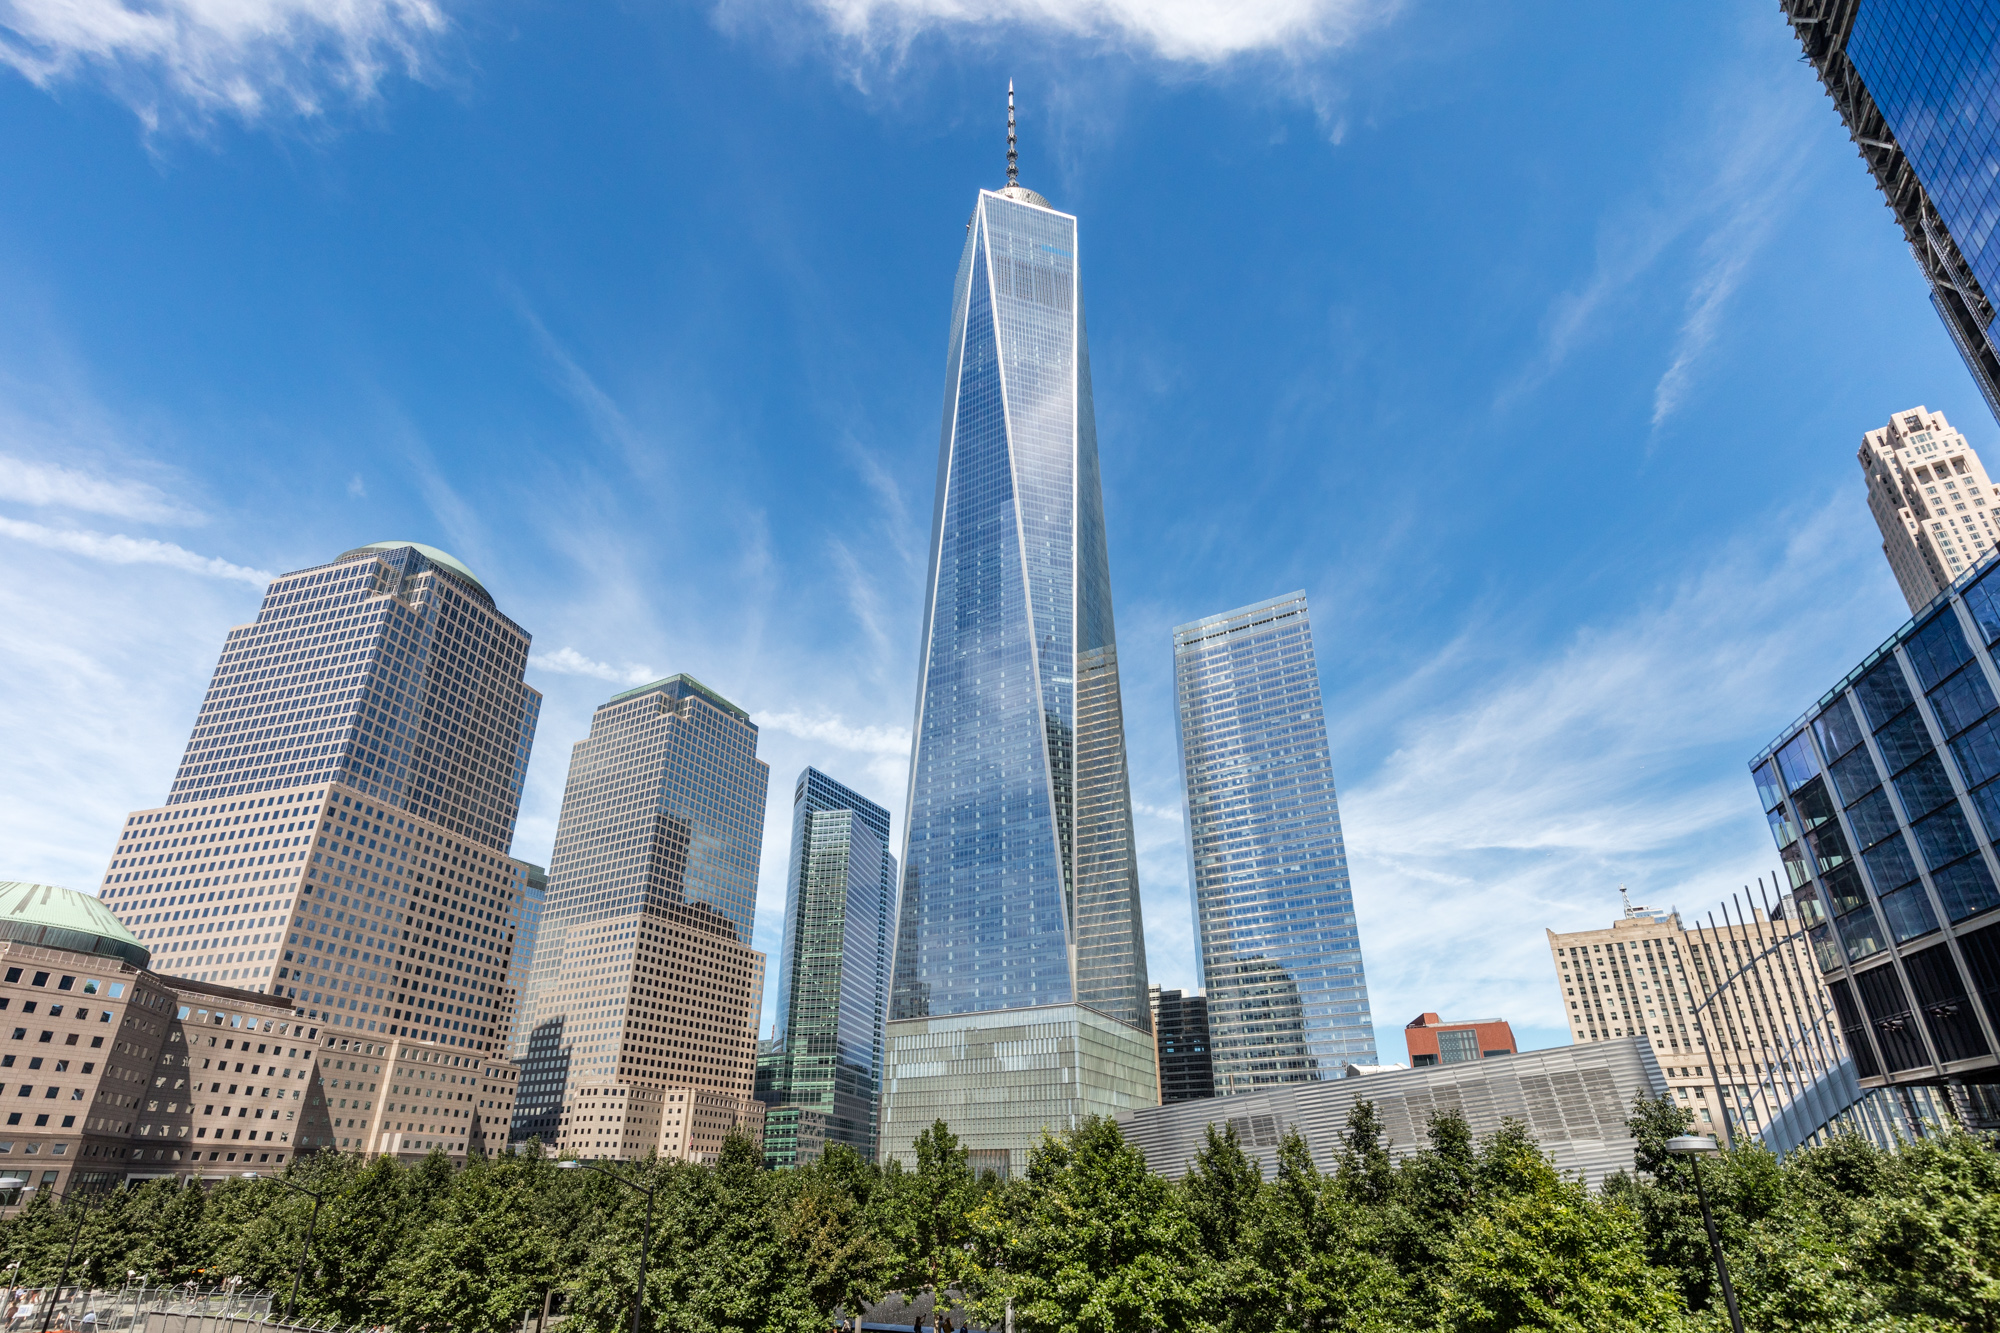 Architect's lawsuit alleging One WTC copyright infringement moves forward—barely